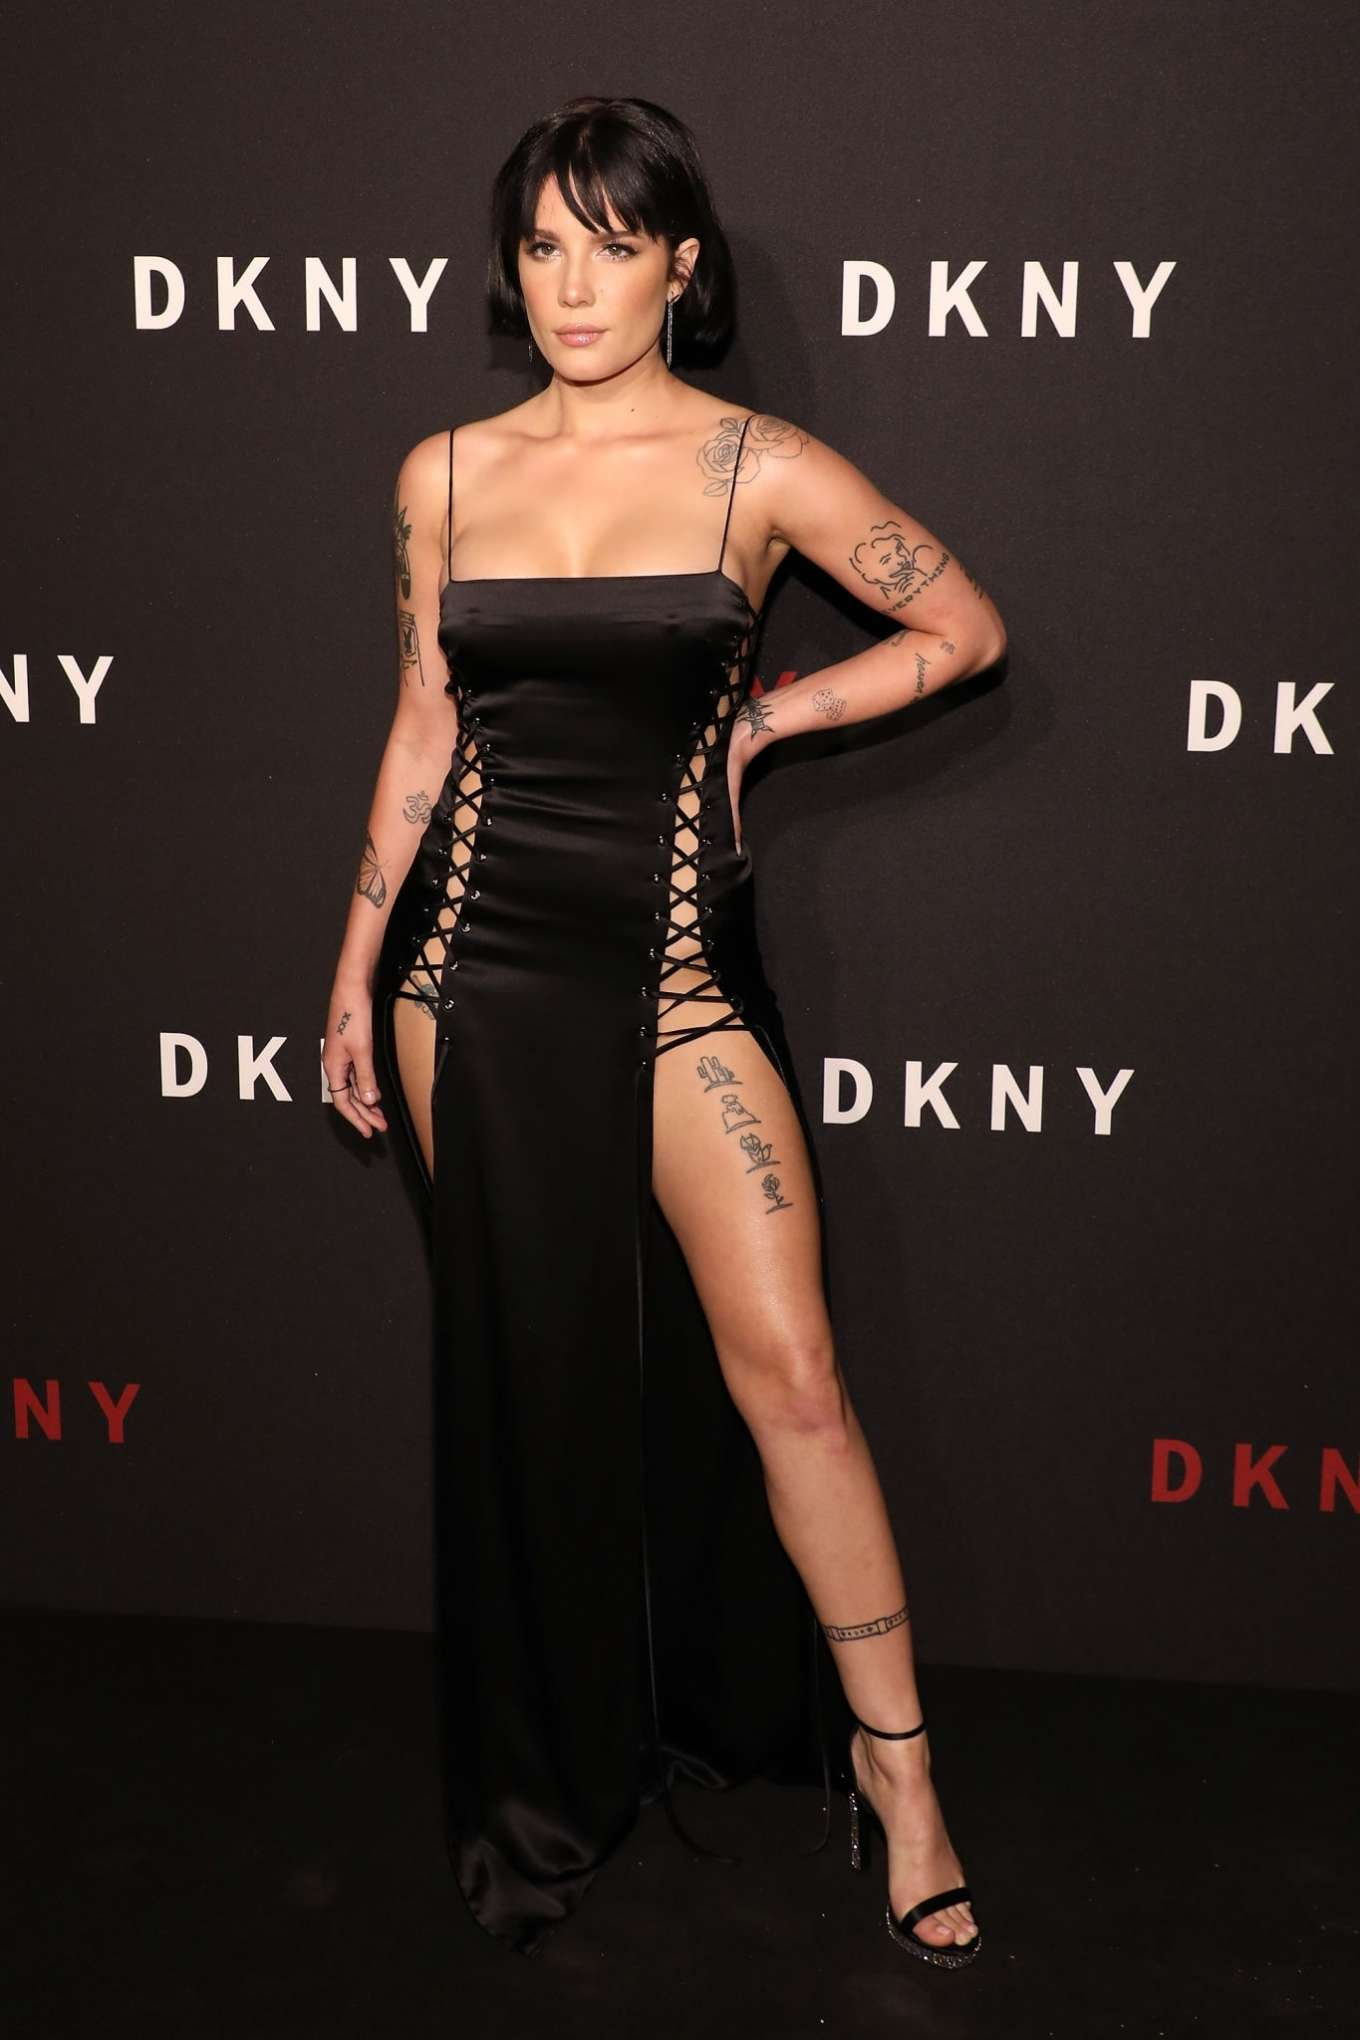 Halsey - 30th anniversary of DKNY Party in NYC